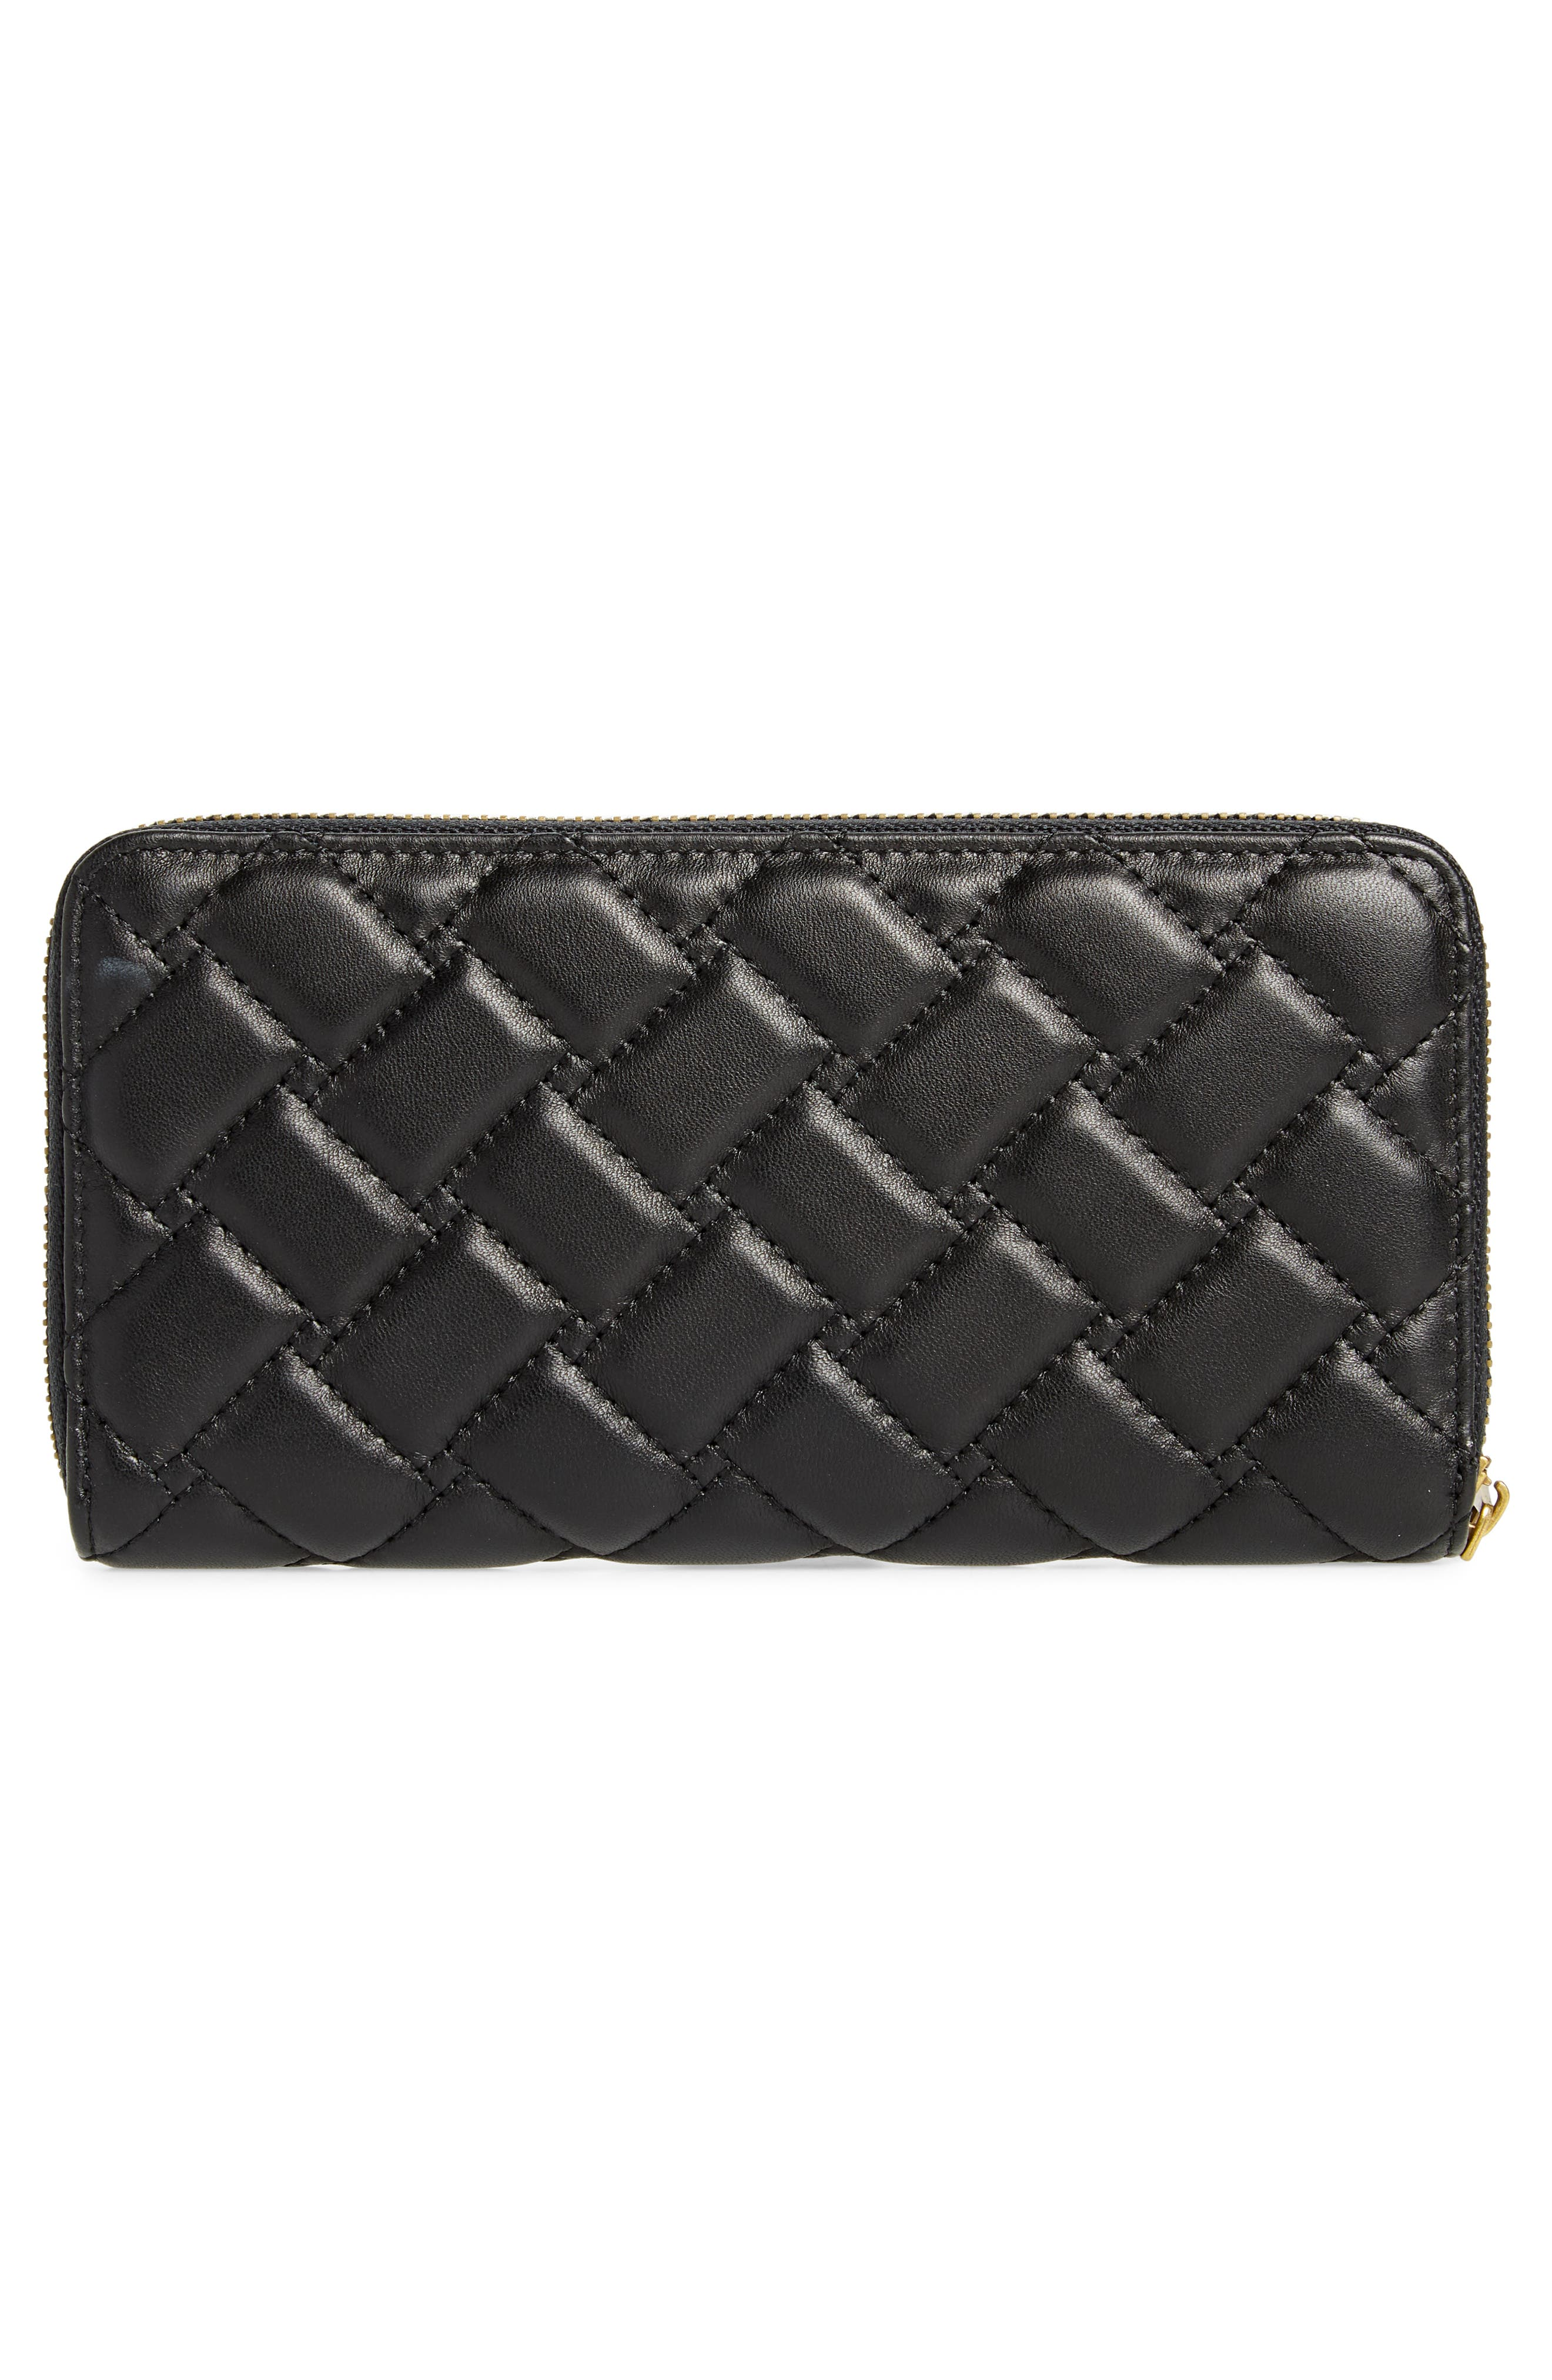 Eagle Leather Zip Around Wallet,                             Alternate thumbnail 3, color,                             001